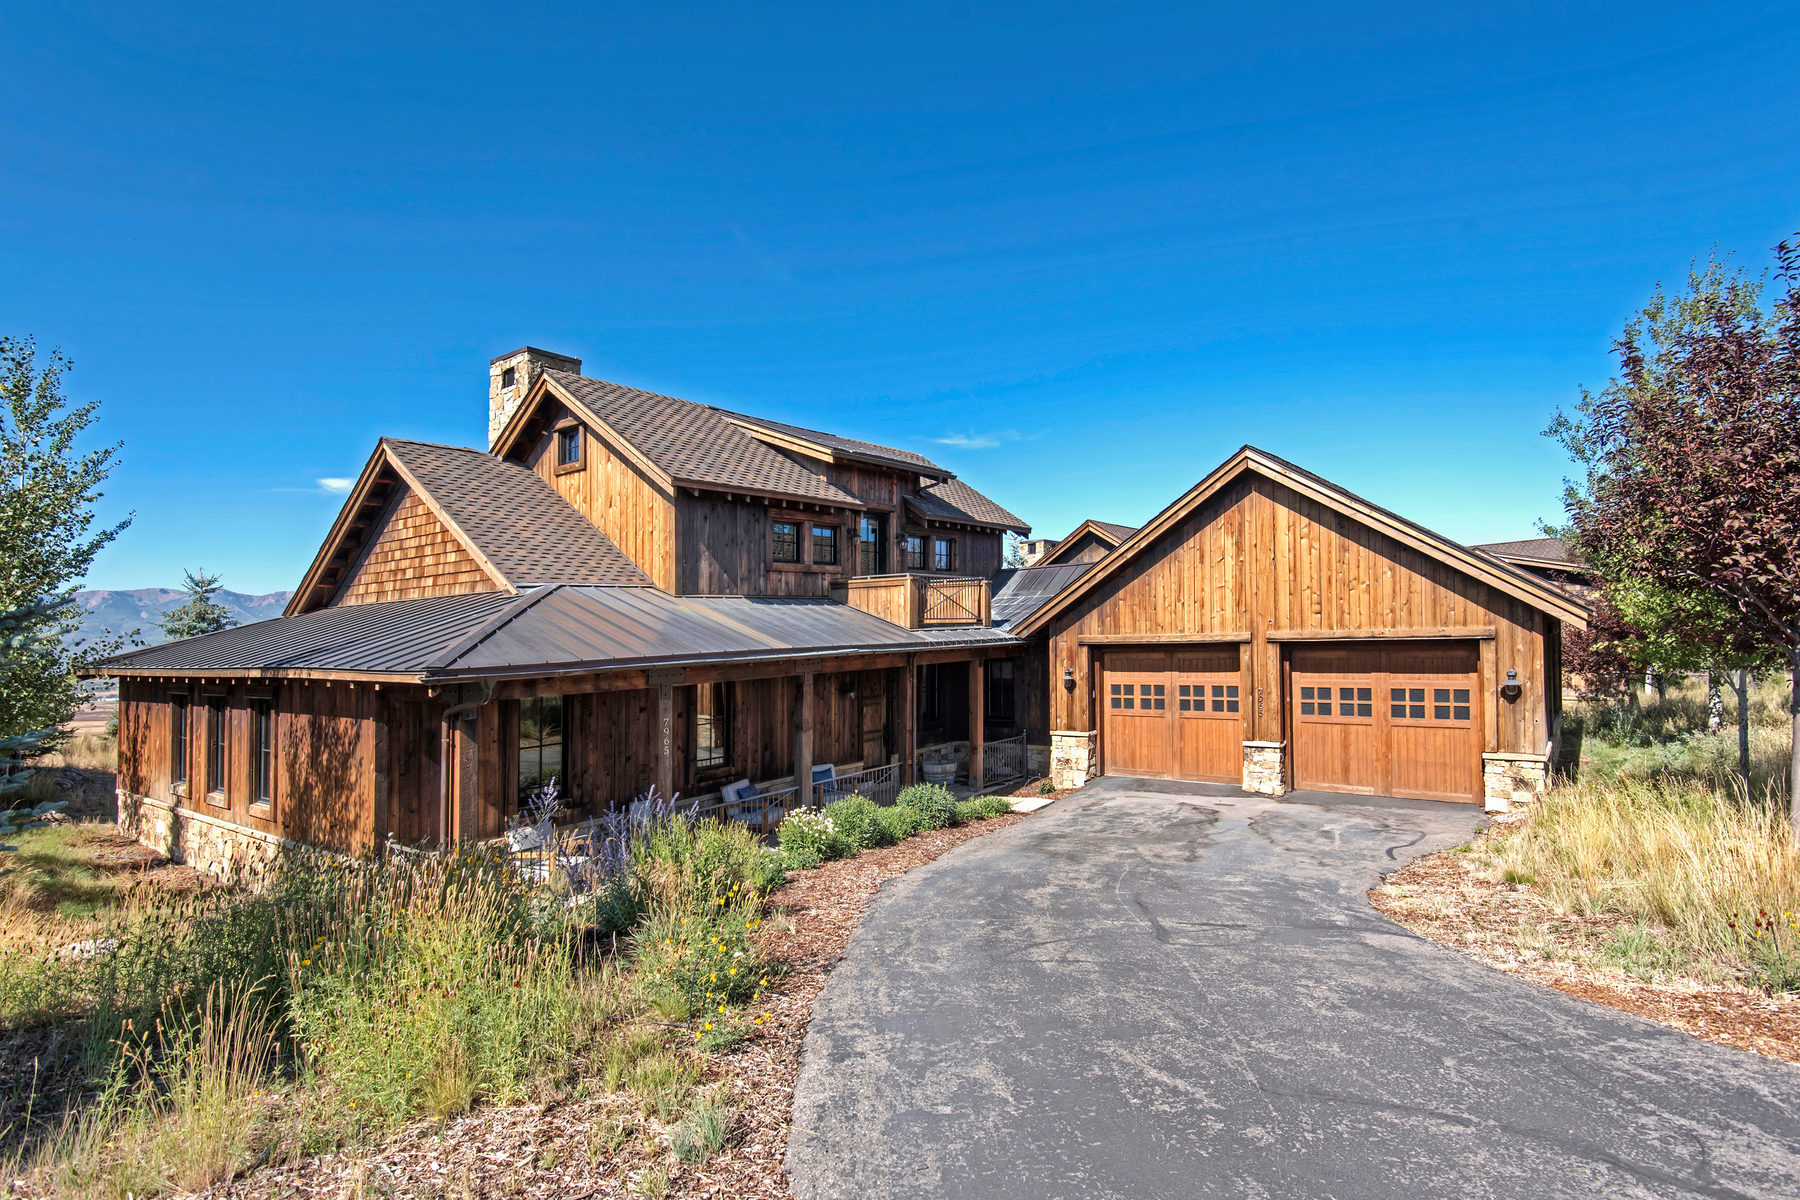 Single Family Home for Sale at Trapper Cabin with a View 7965 Western Sky Park City, Utah, 84098 United States